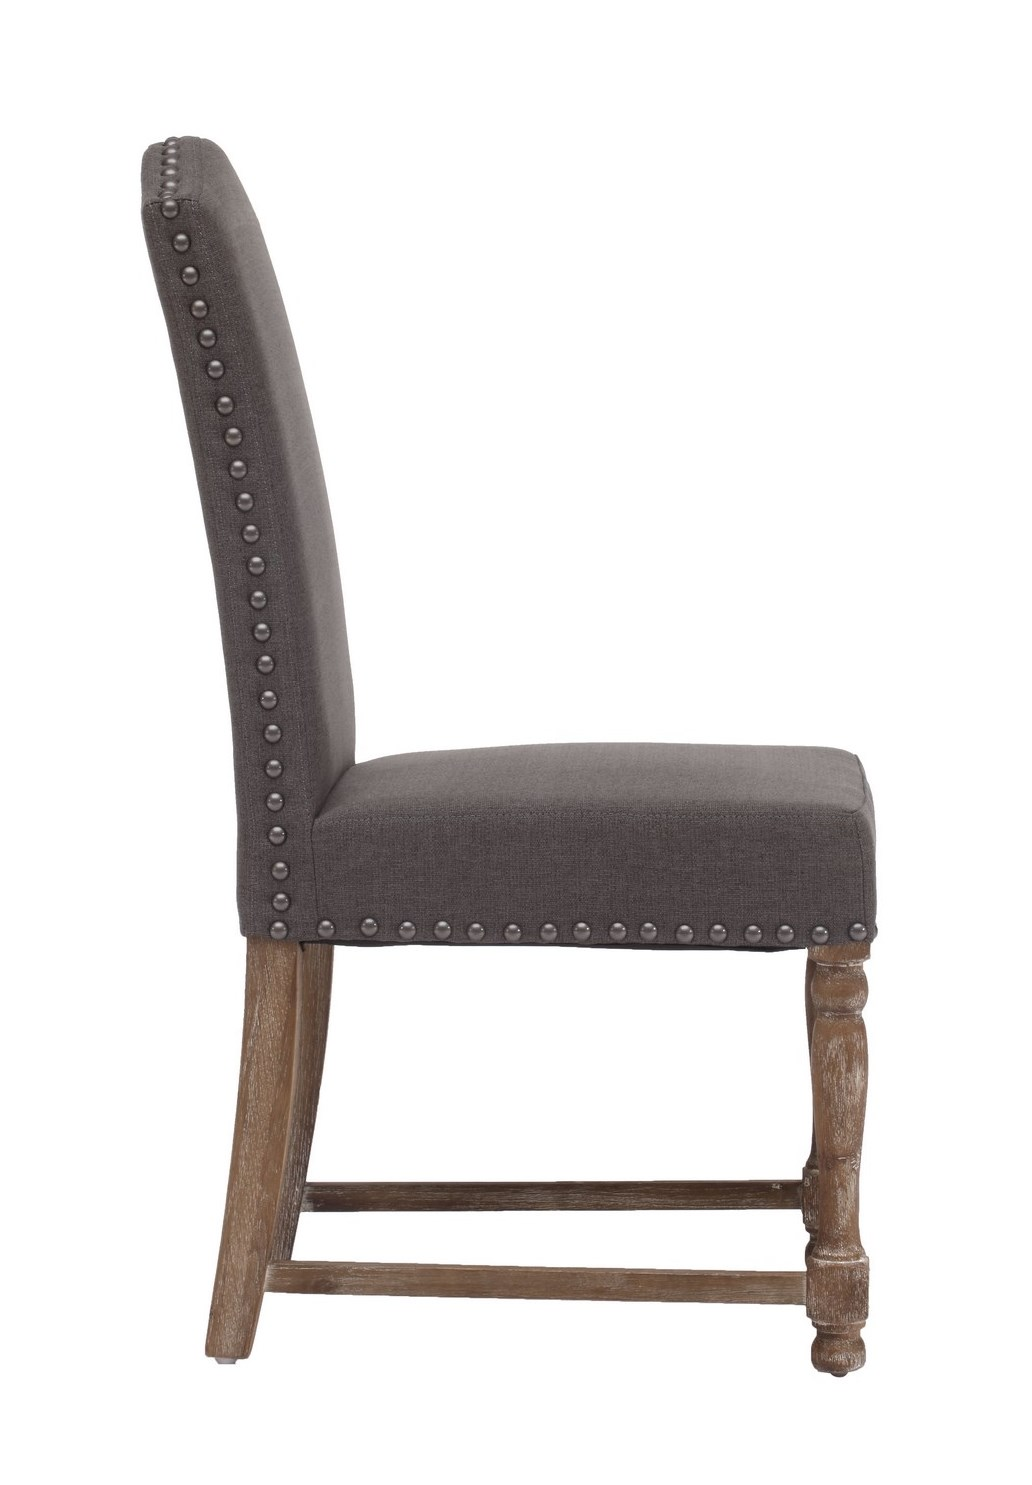 richmond traditional dining chair in charcoal gray efurniture mart